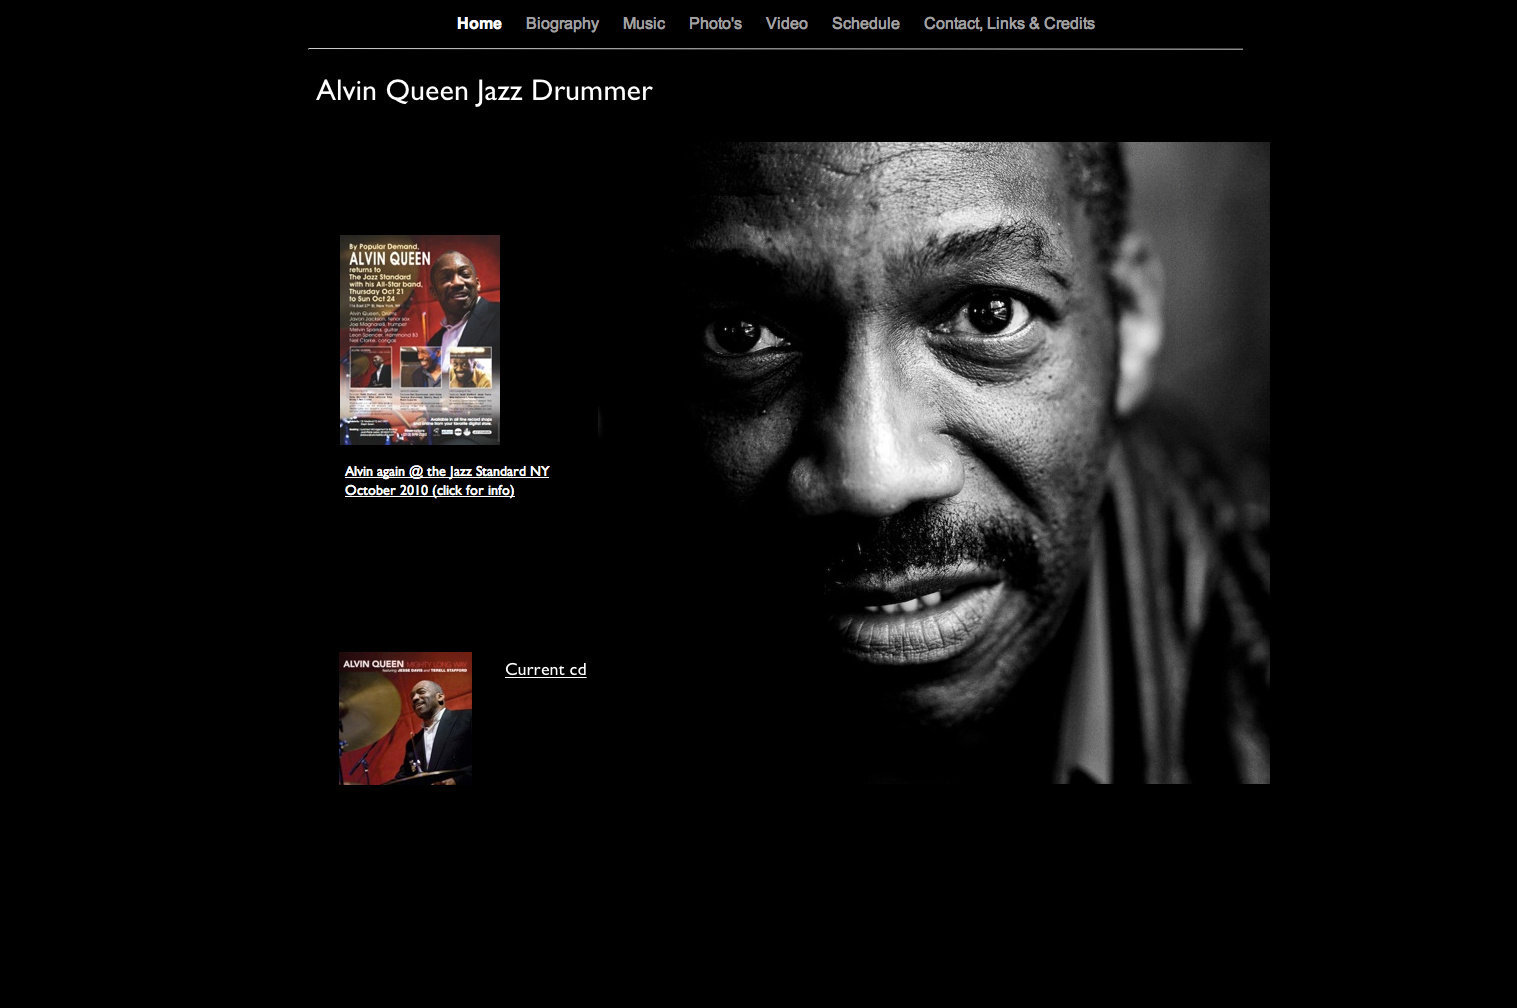 Alvin Queen website